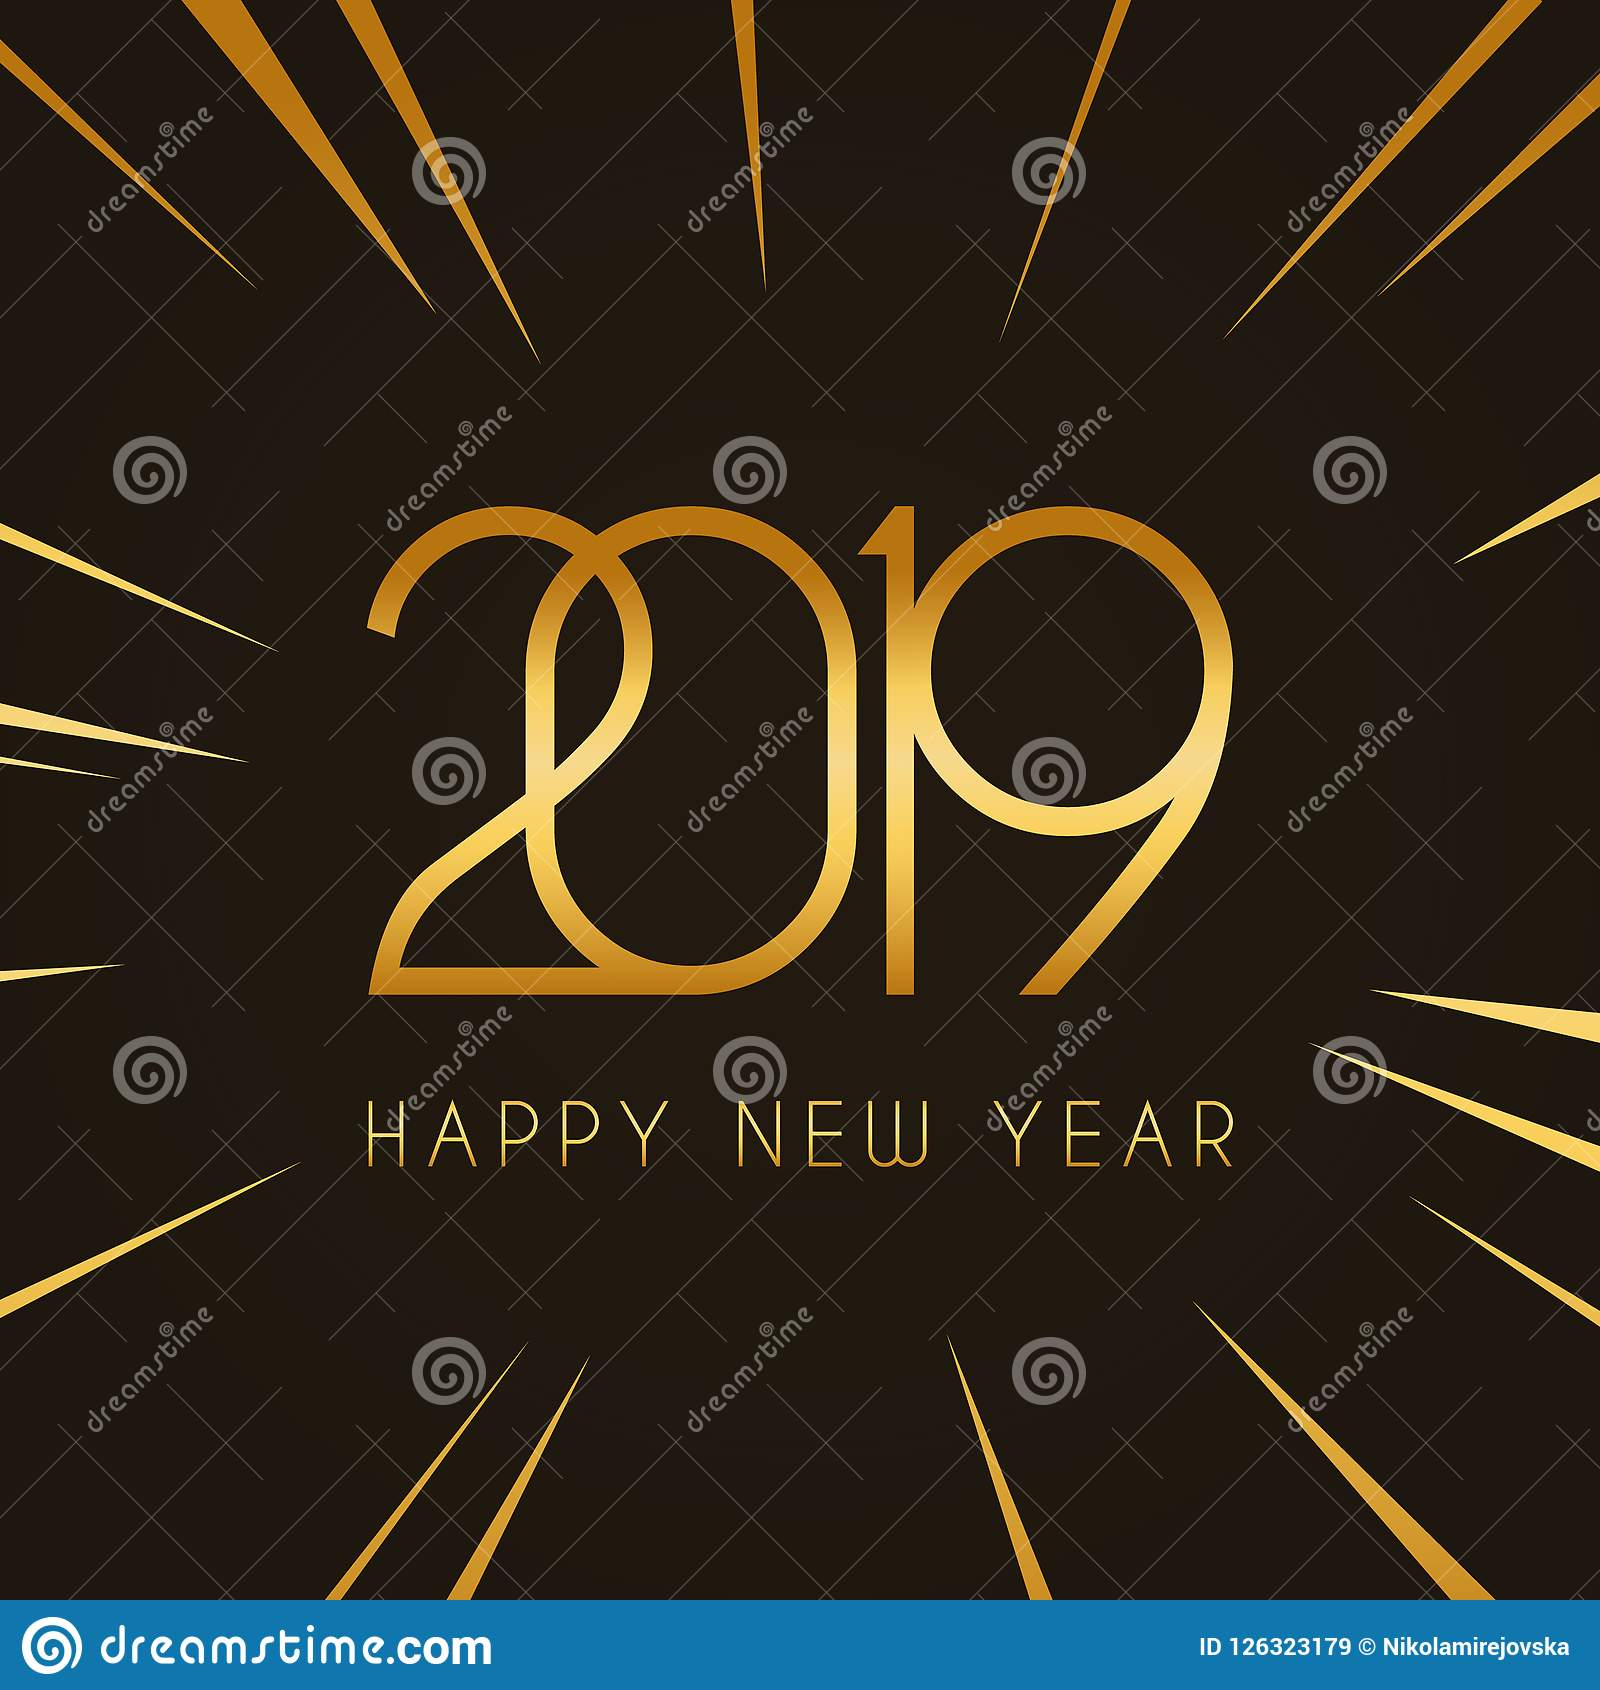 2019 Happy New Year Design Template For Holiday Greeting Card And